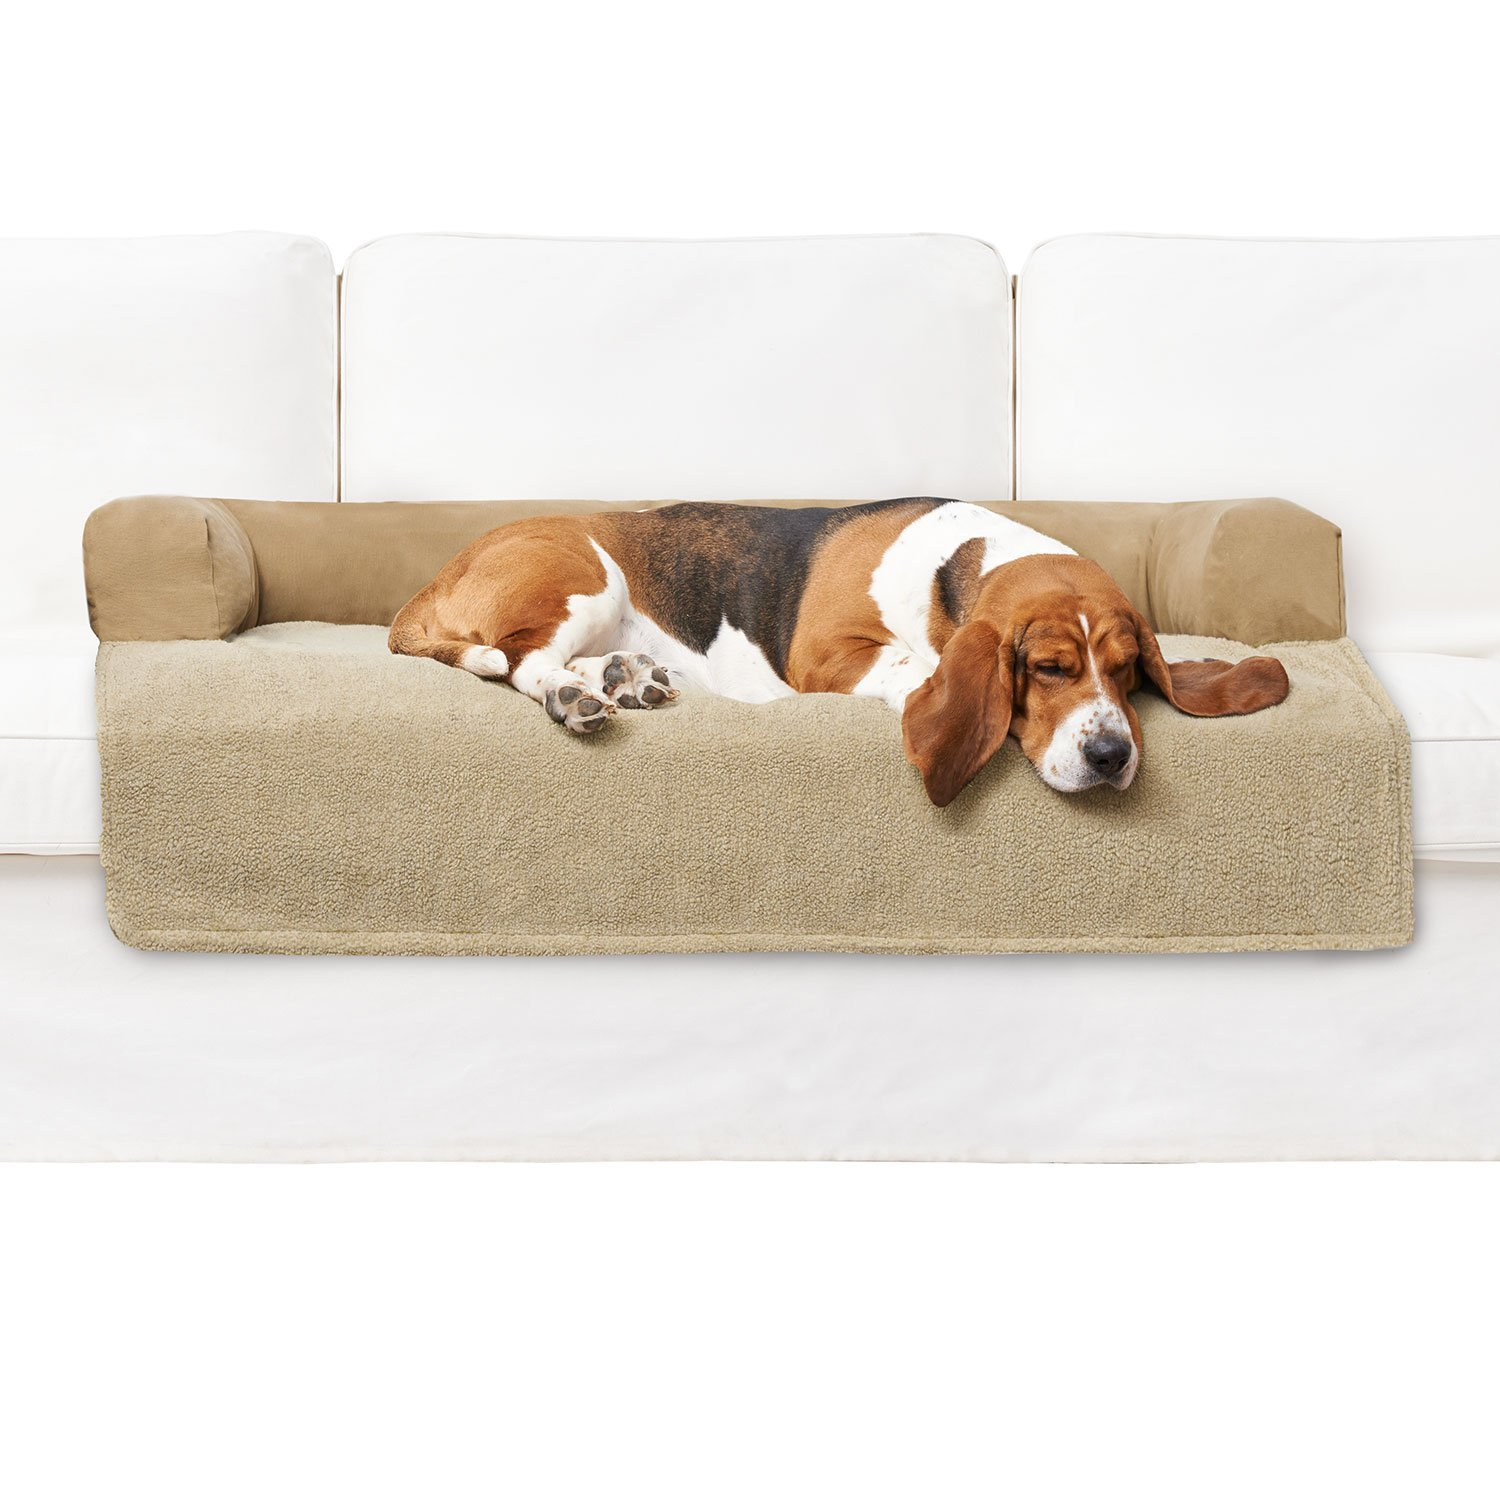 Tremendous Pawtex Premium Couch Cover Dog Bed Durable Service Ocoug Best Dining Table And Chair Ideas Images Ocougorg